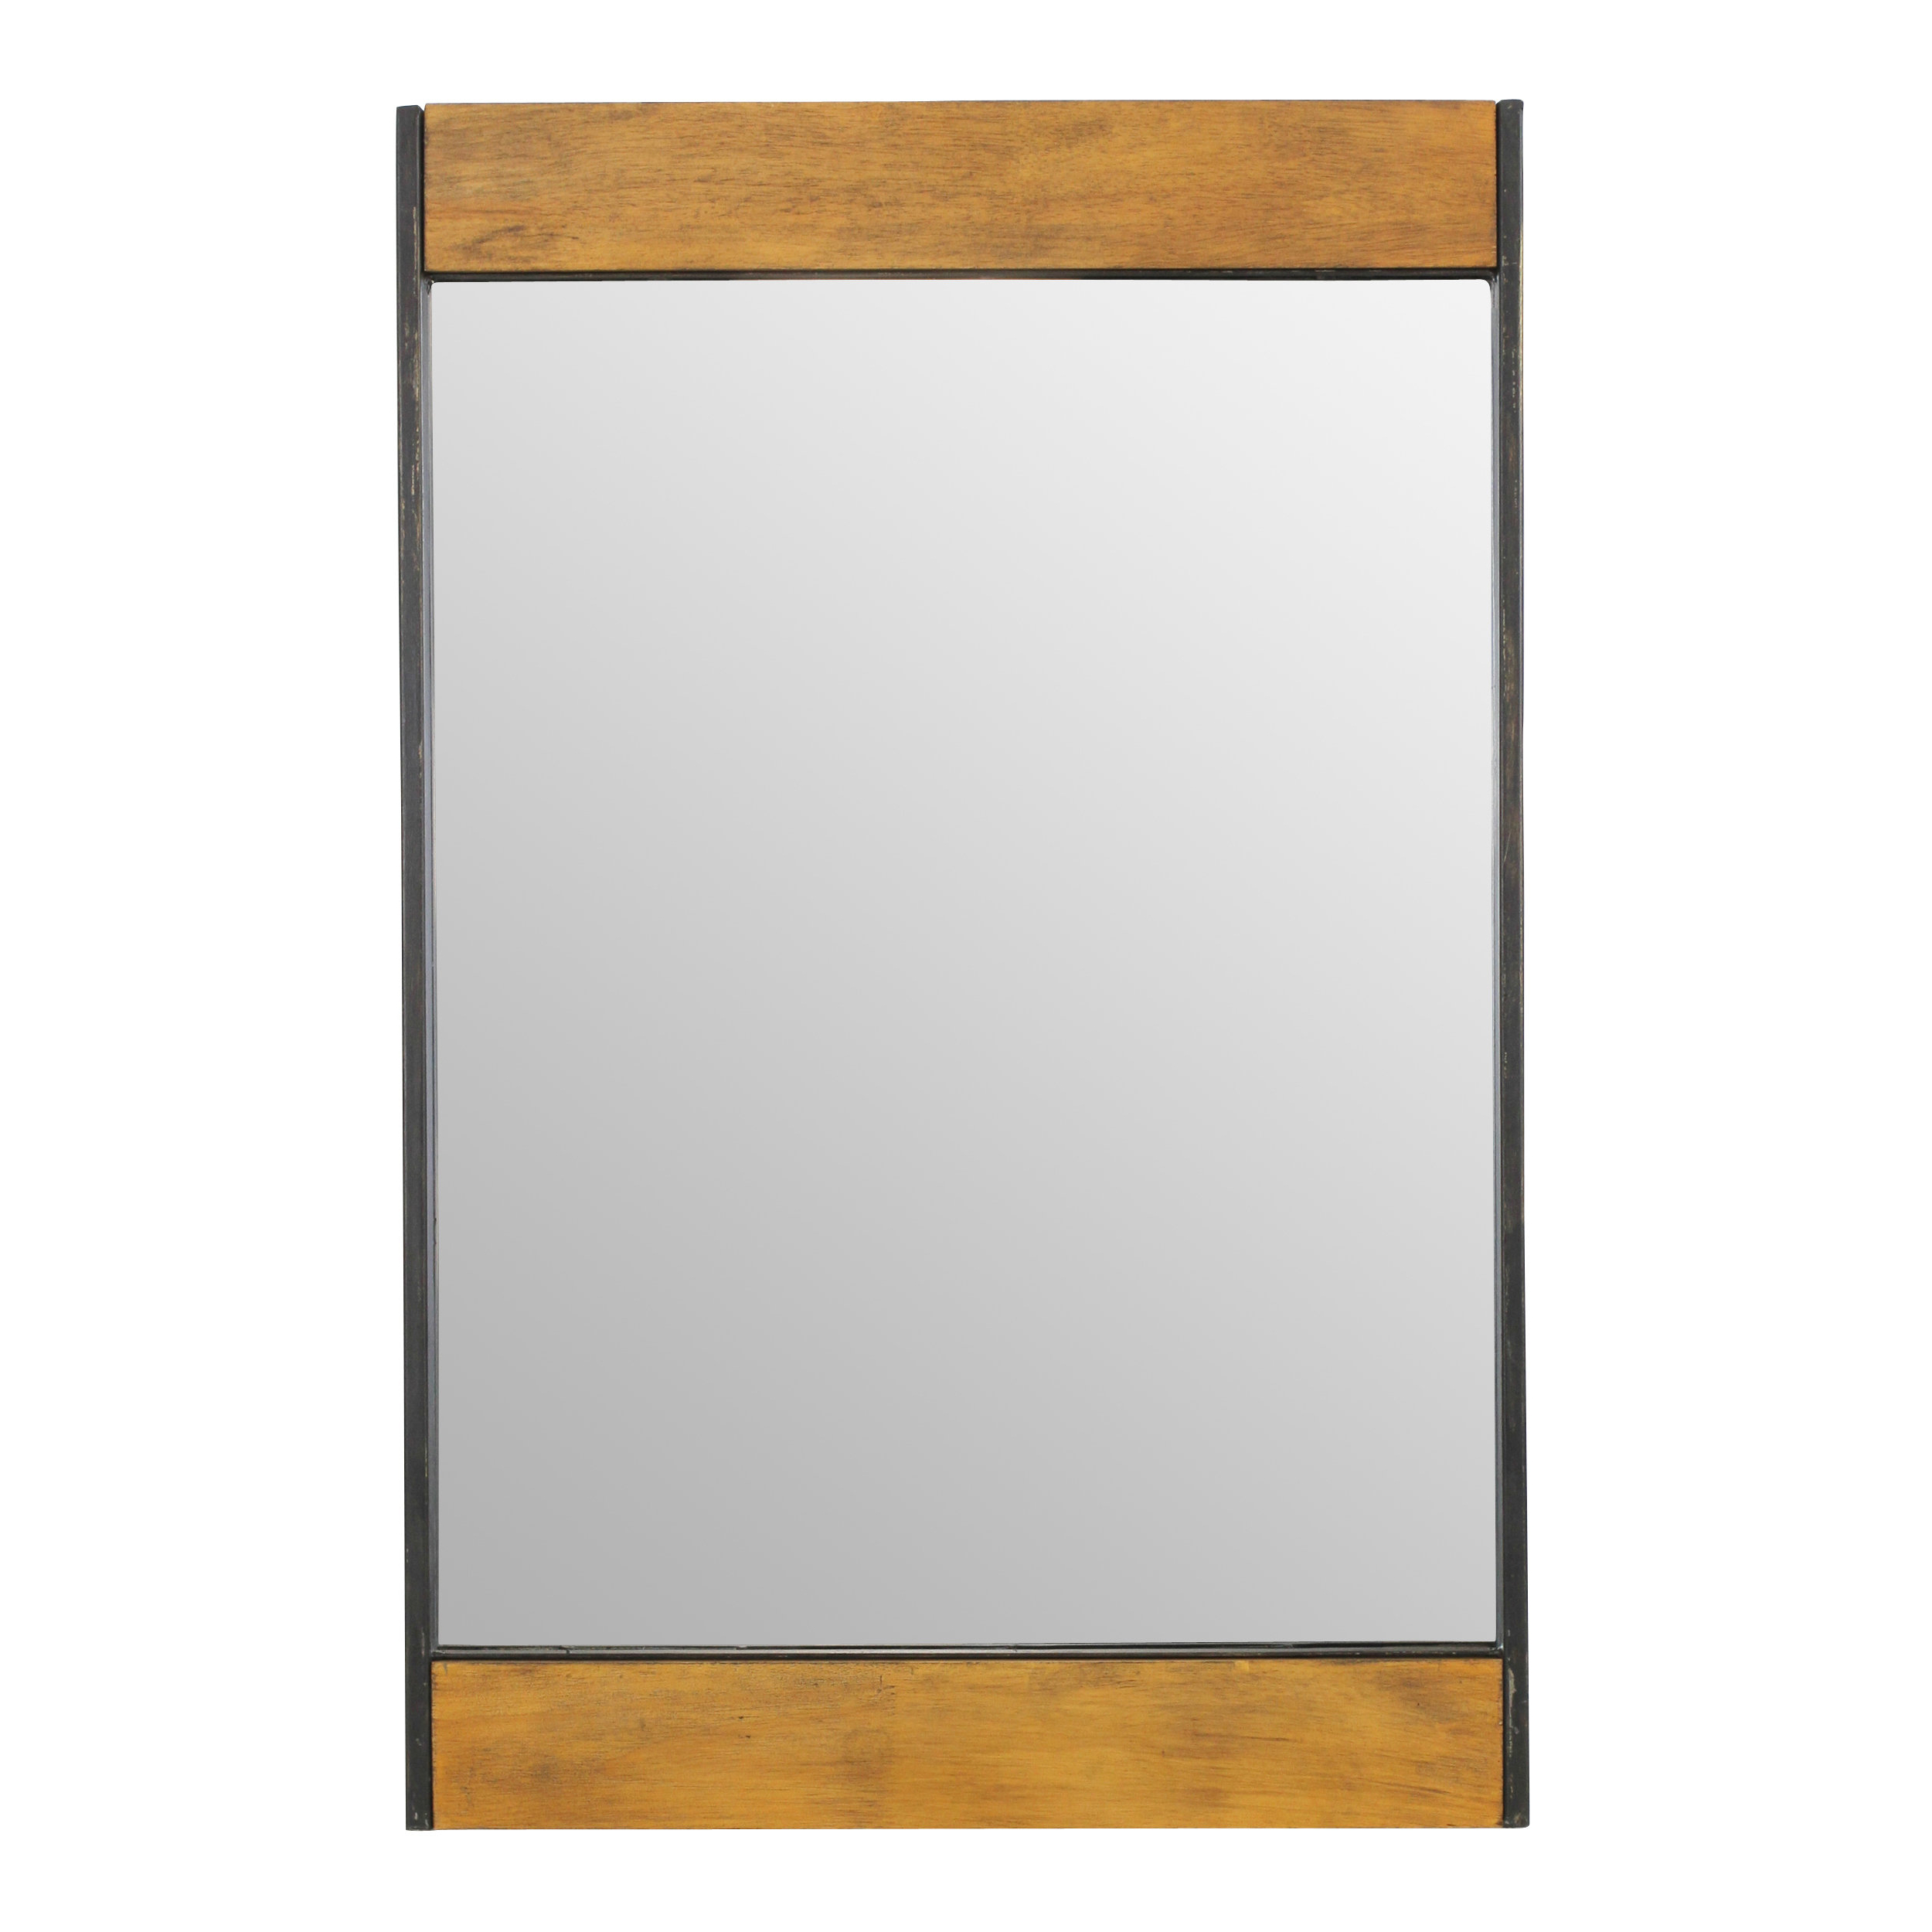 Miranda Wood And Metal Wall Mirror In Well Known Koeller Industrial Metal Wall Mirrors (View 5 of 20)